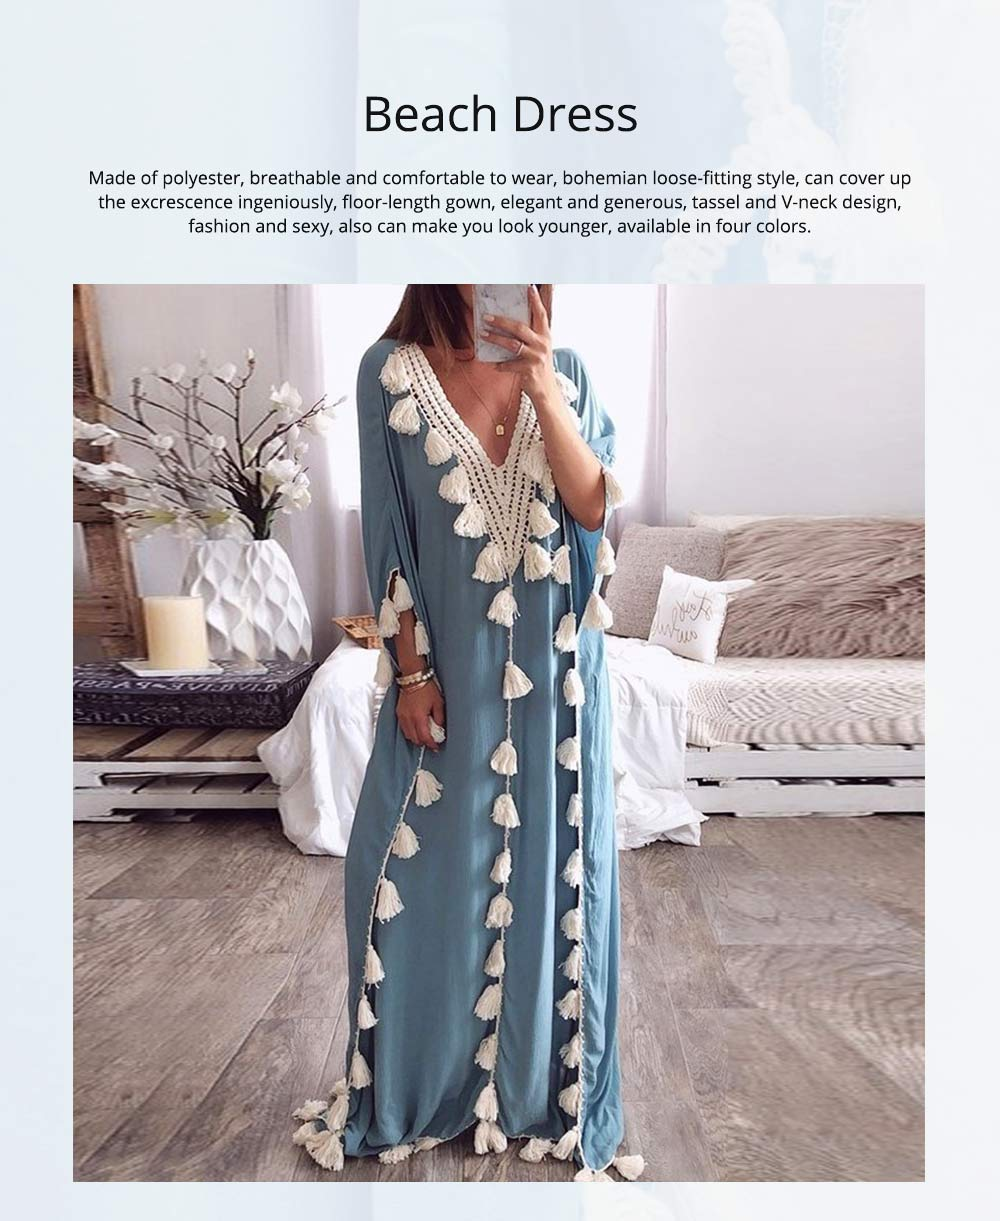 Women Long Beach Dress Large Size V-neck Fashion Tassel Loose Bohemian National Style Beach Dress Hot Sale 2019 0